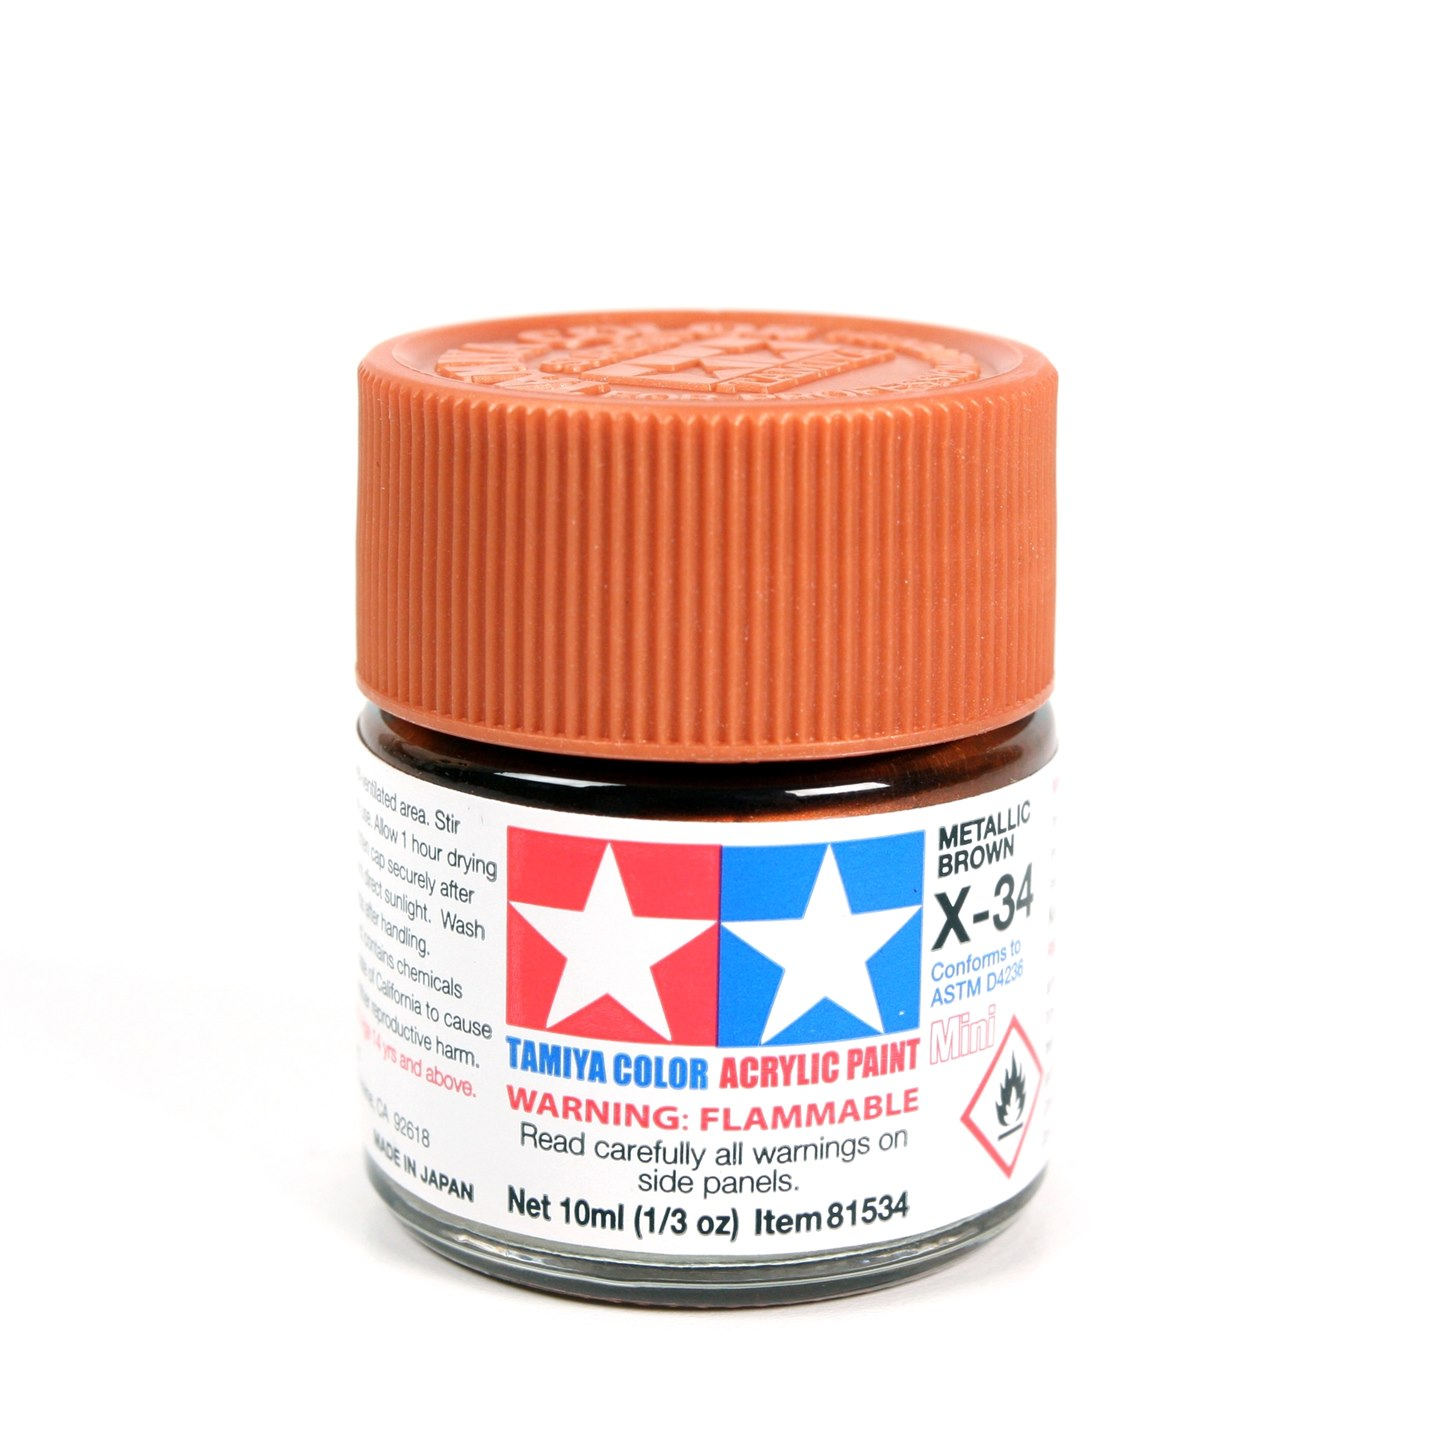 Tamiya Color Acrylic Paint Mini X-34 (Metallic Brown) (10ml)